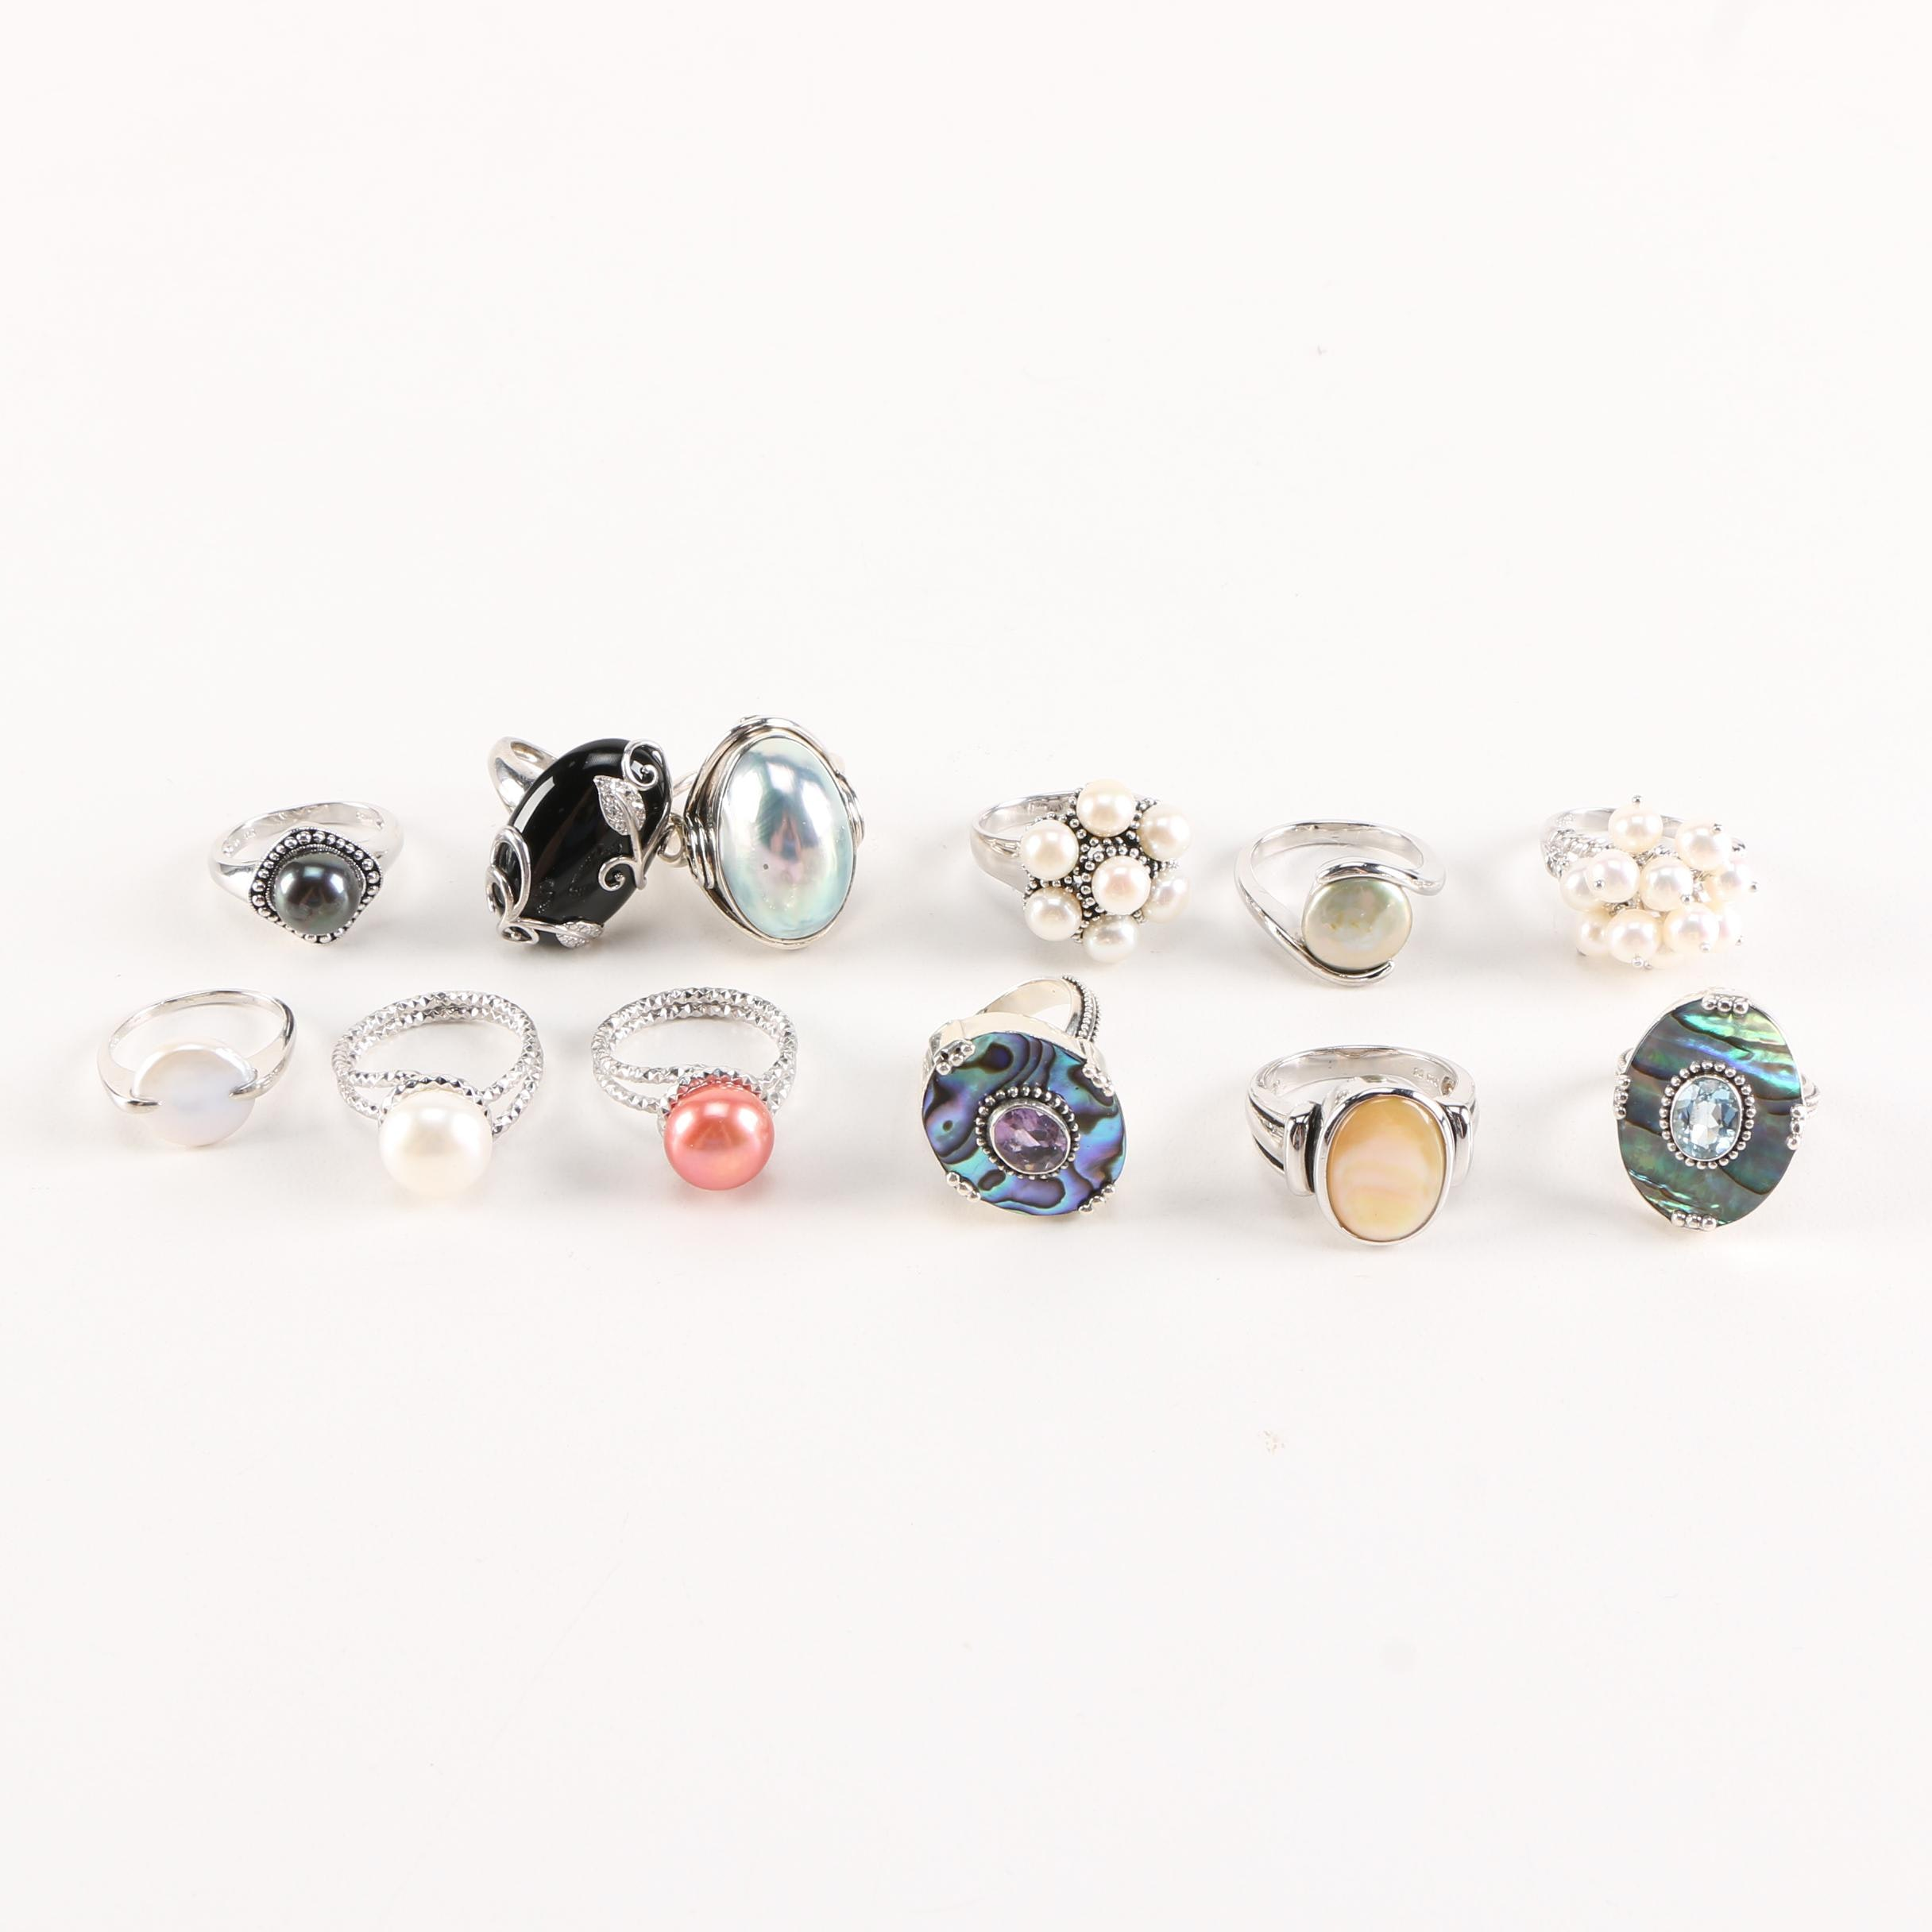 Sterling Silver Rings Featuring Various Gemstones and Cultured Pearls